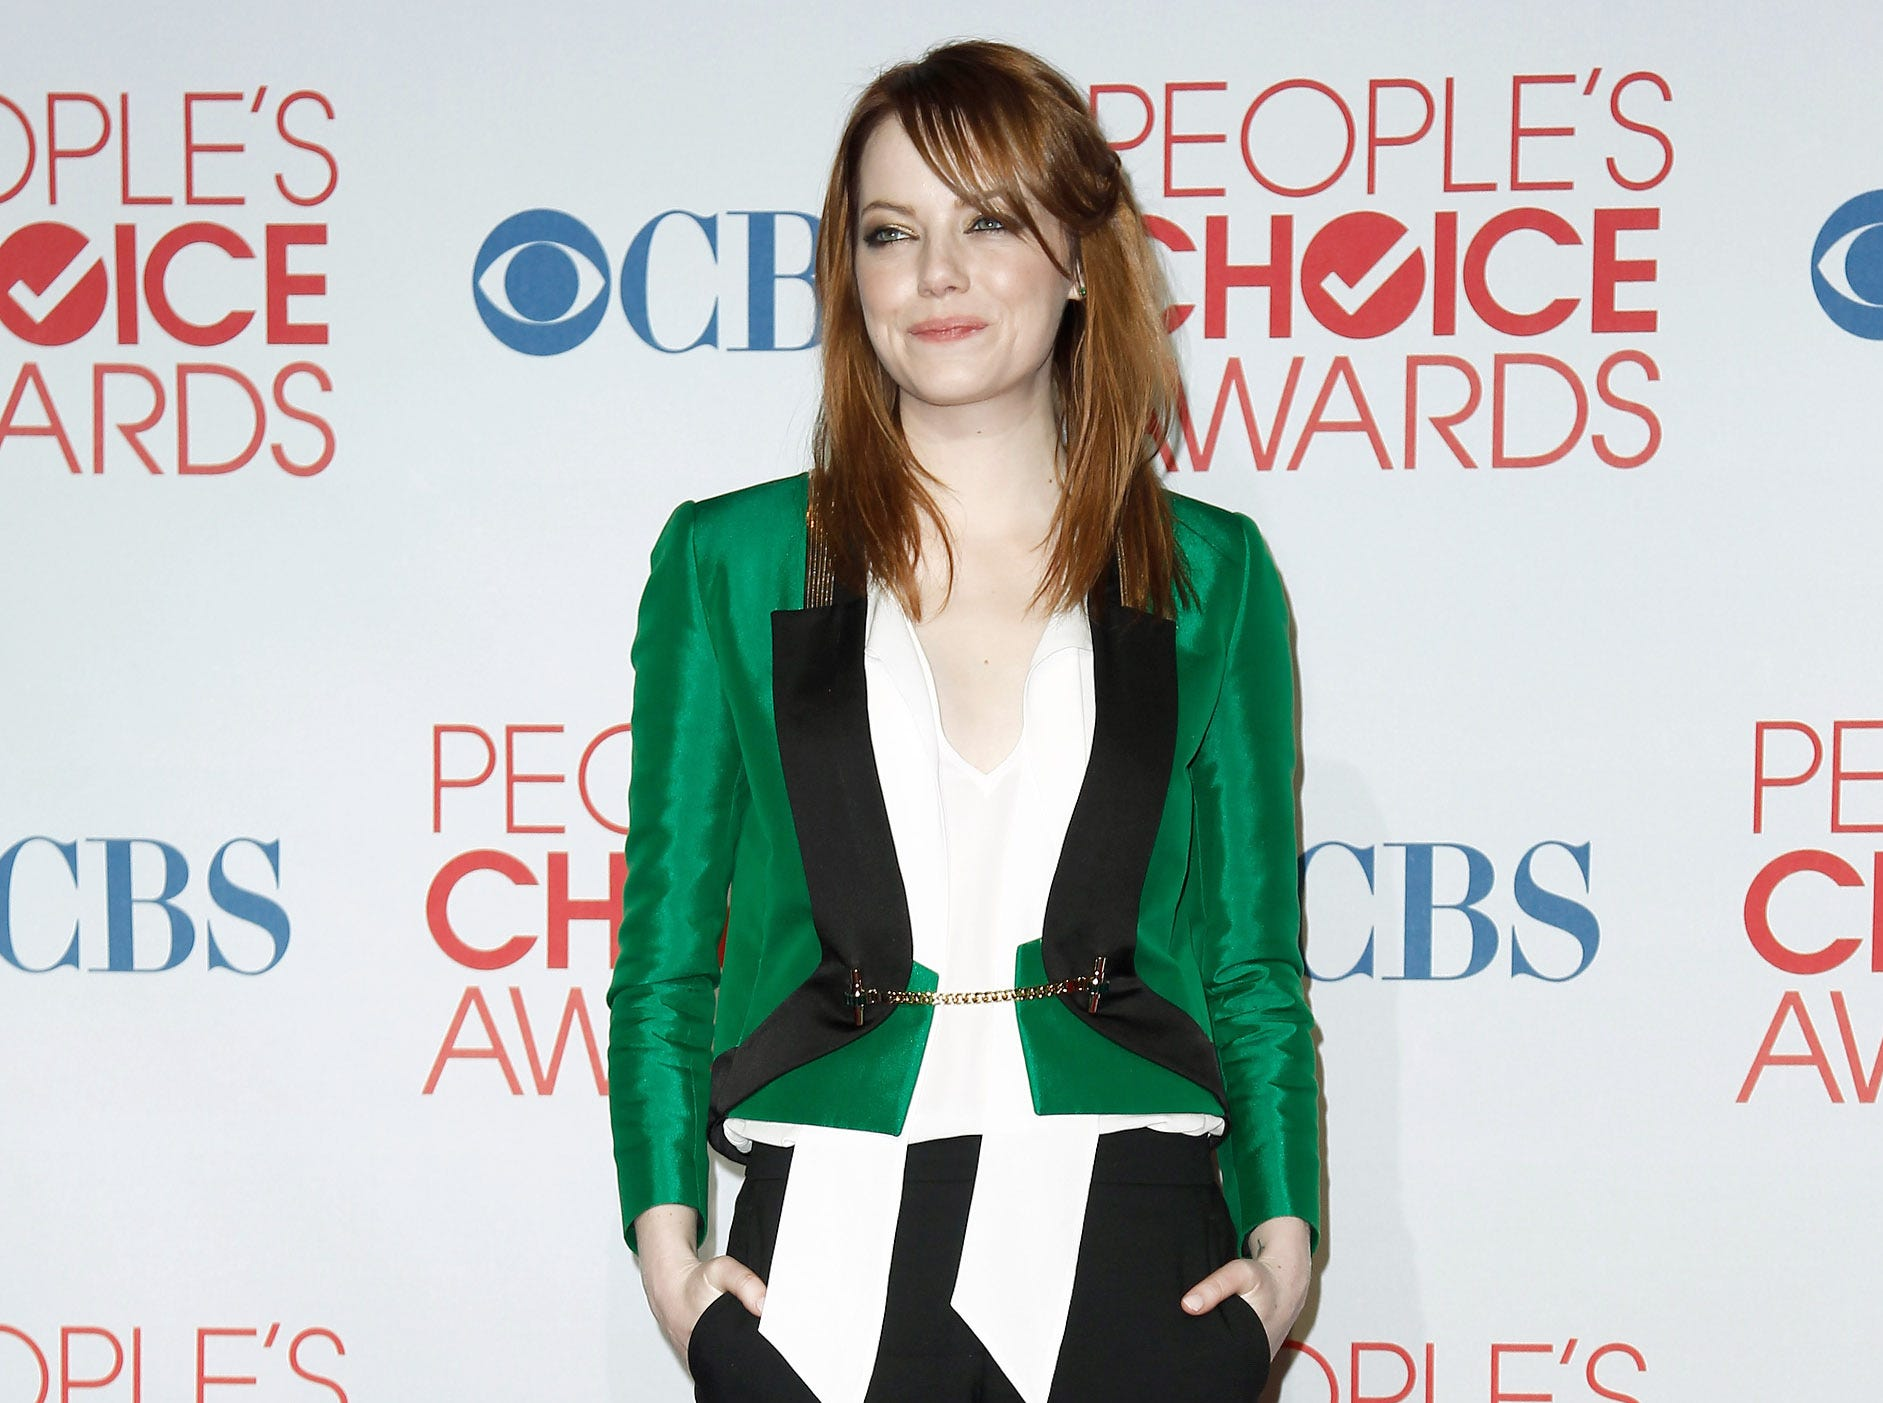 ORG XMIT: OTK Emma Stone, winner of the award for favorite movie actress, poses backstage at the People's Choice Awards on Wednesday, Jan. 11, 2012 in Los Angeles. (AP Photo/Matt Sayles)